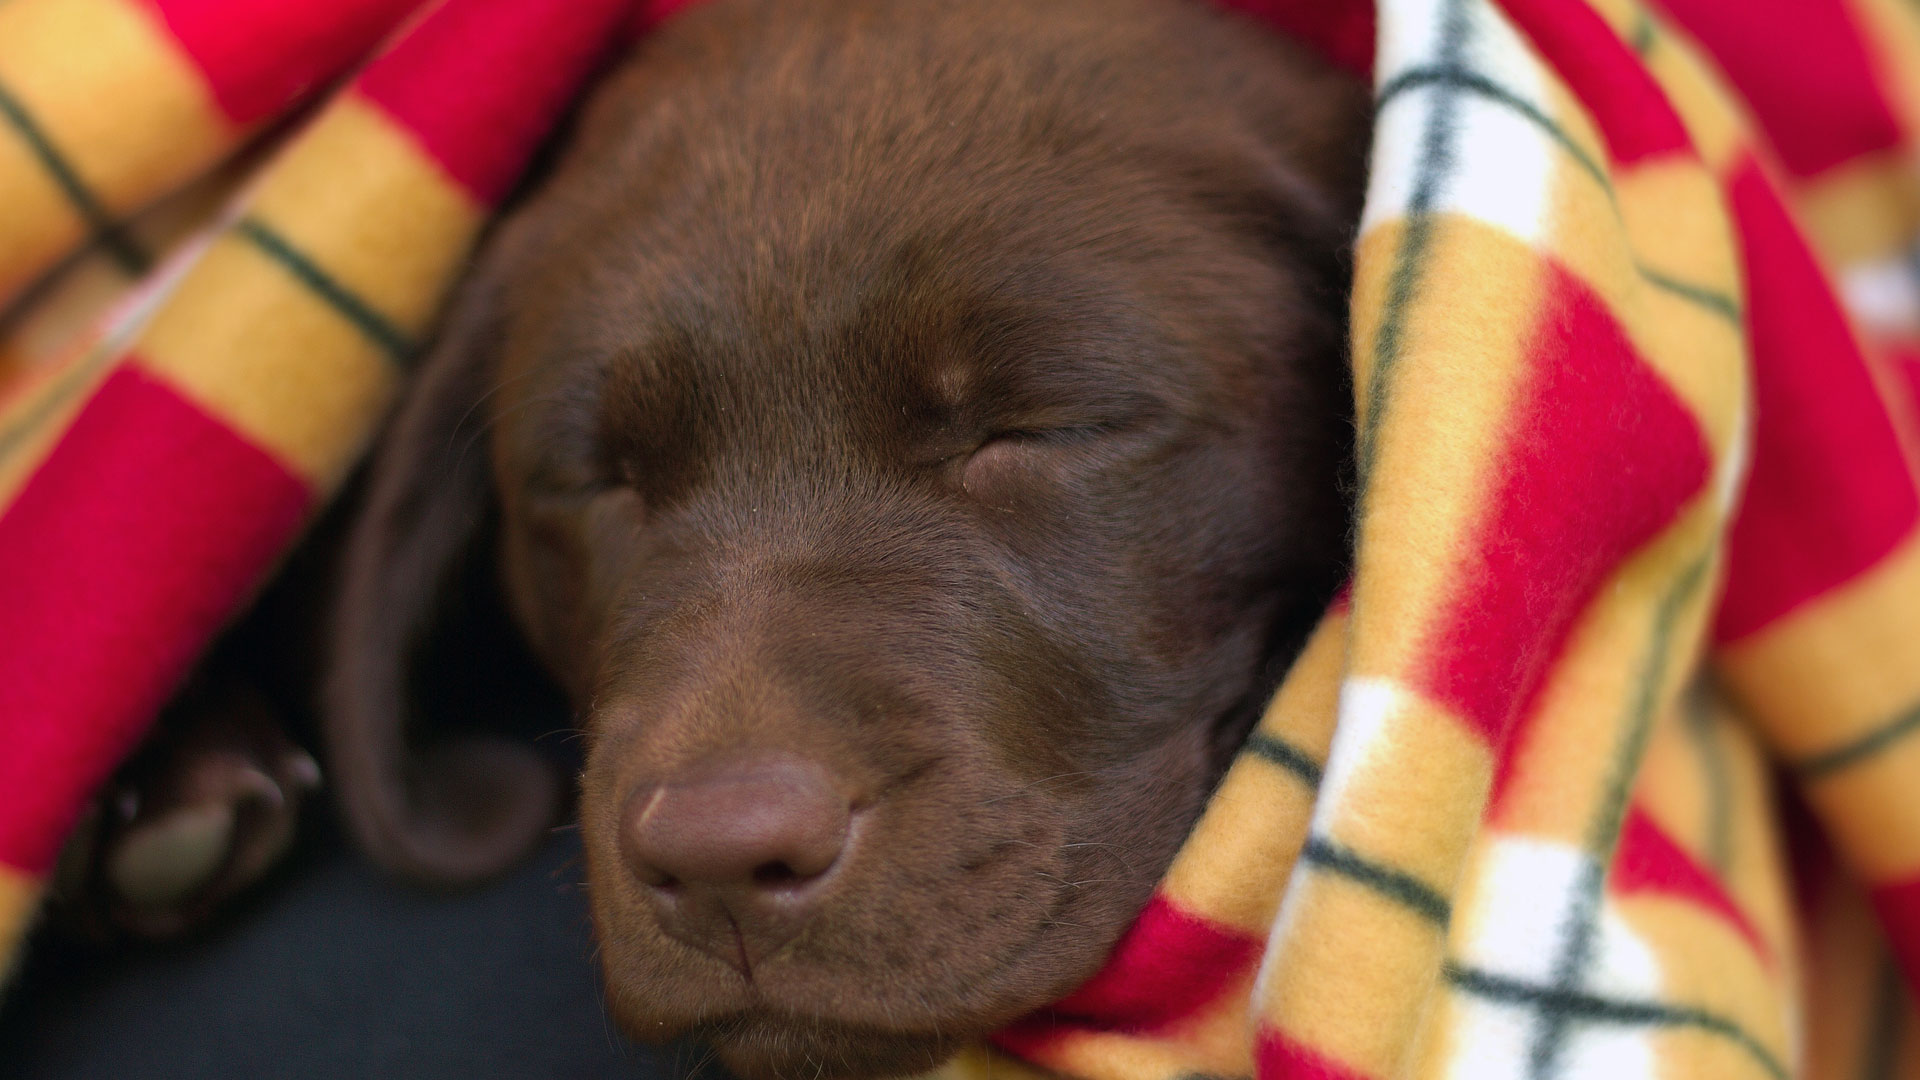 labradorcentercomwallpapers1920x1080chocolate lab puppy asleepjpg 1920x1080